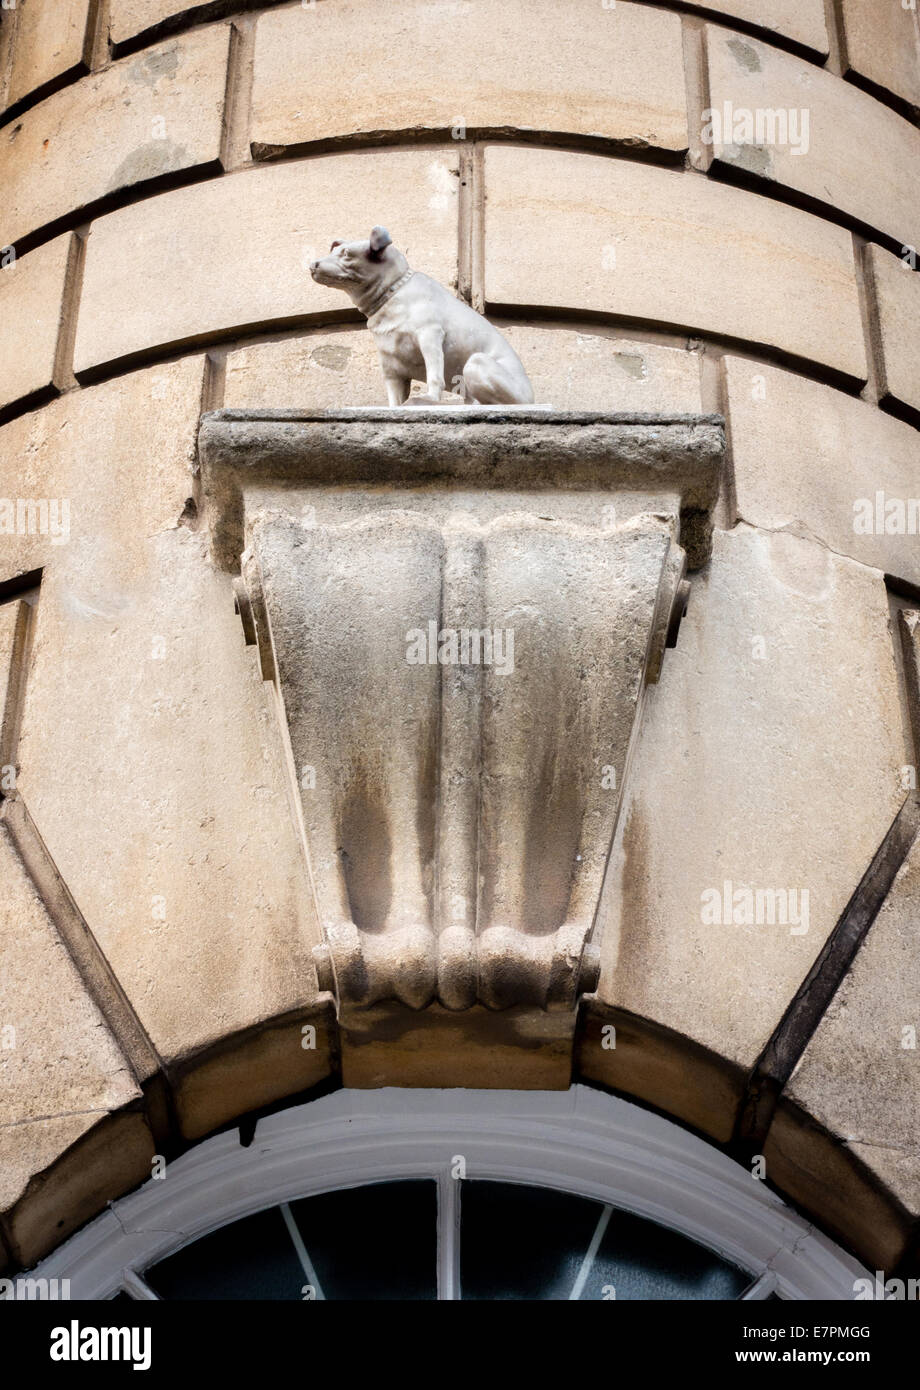 Nipper the Jack Russell of His Master's Voice fame commemorated in a stone sculpture on a Bristol University - Stock Image